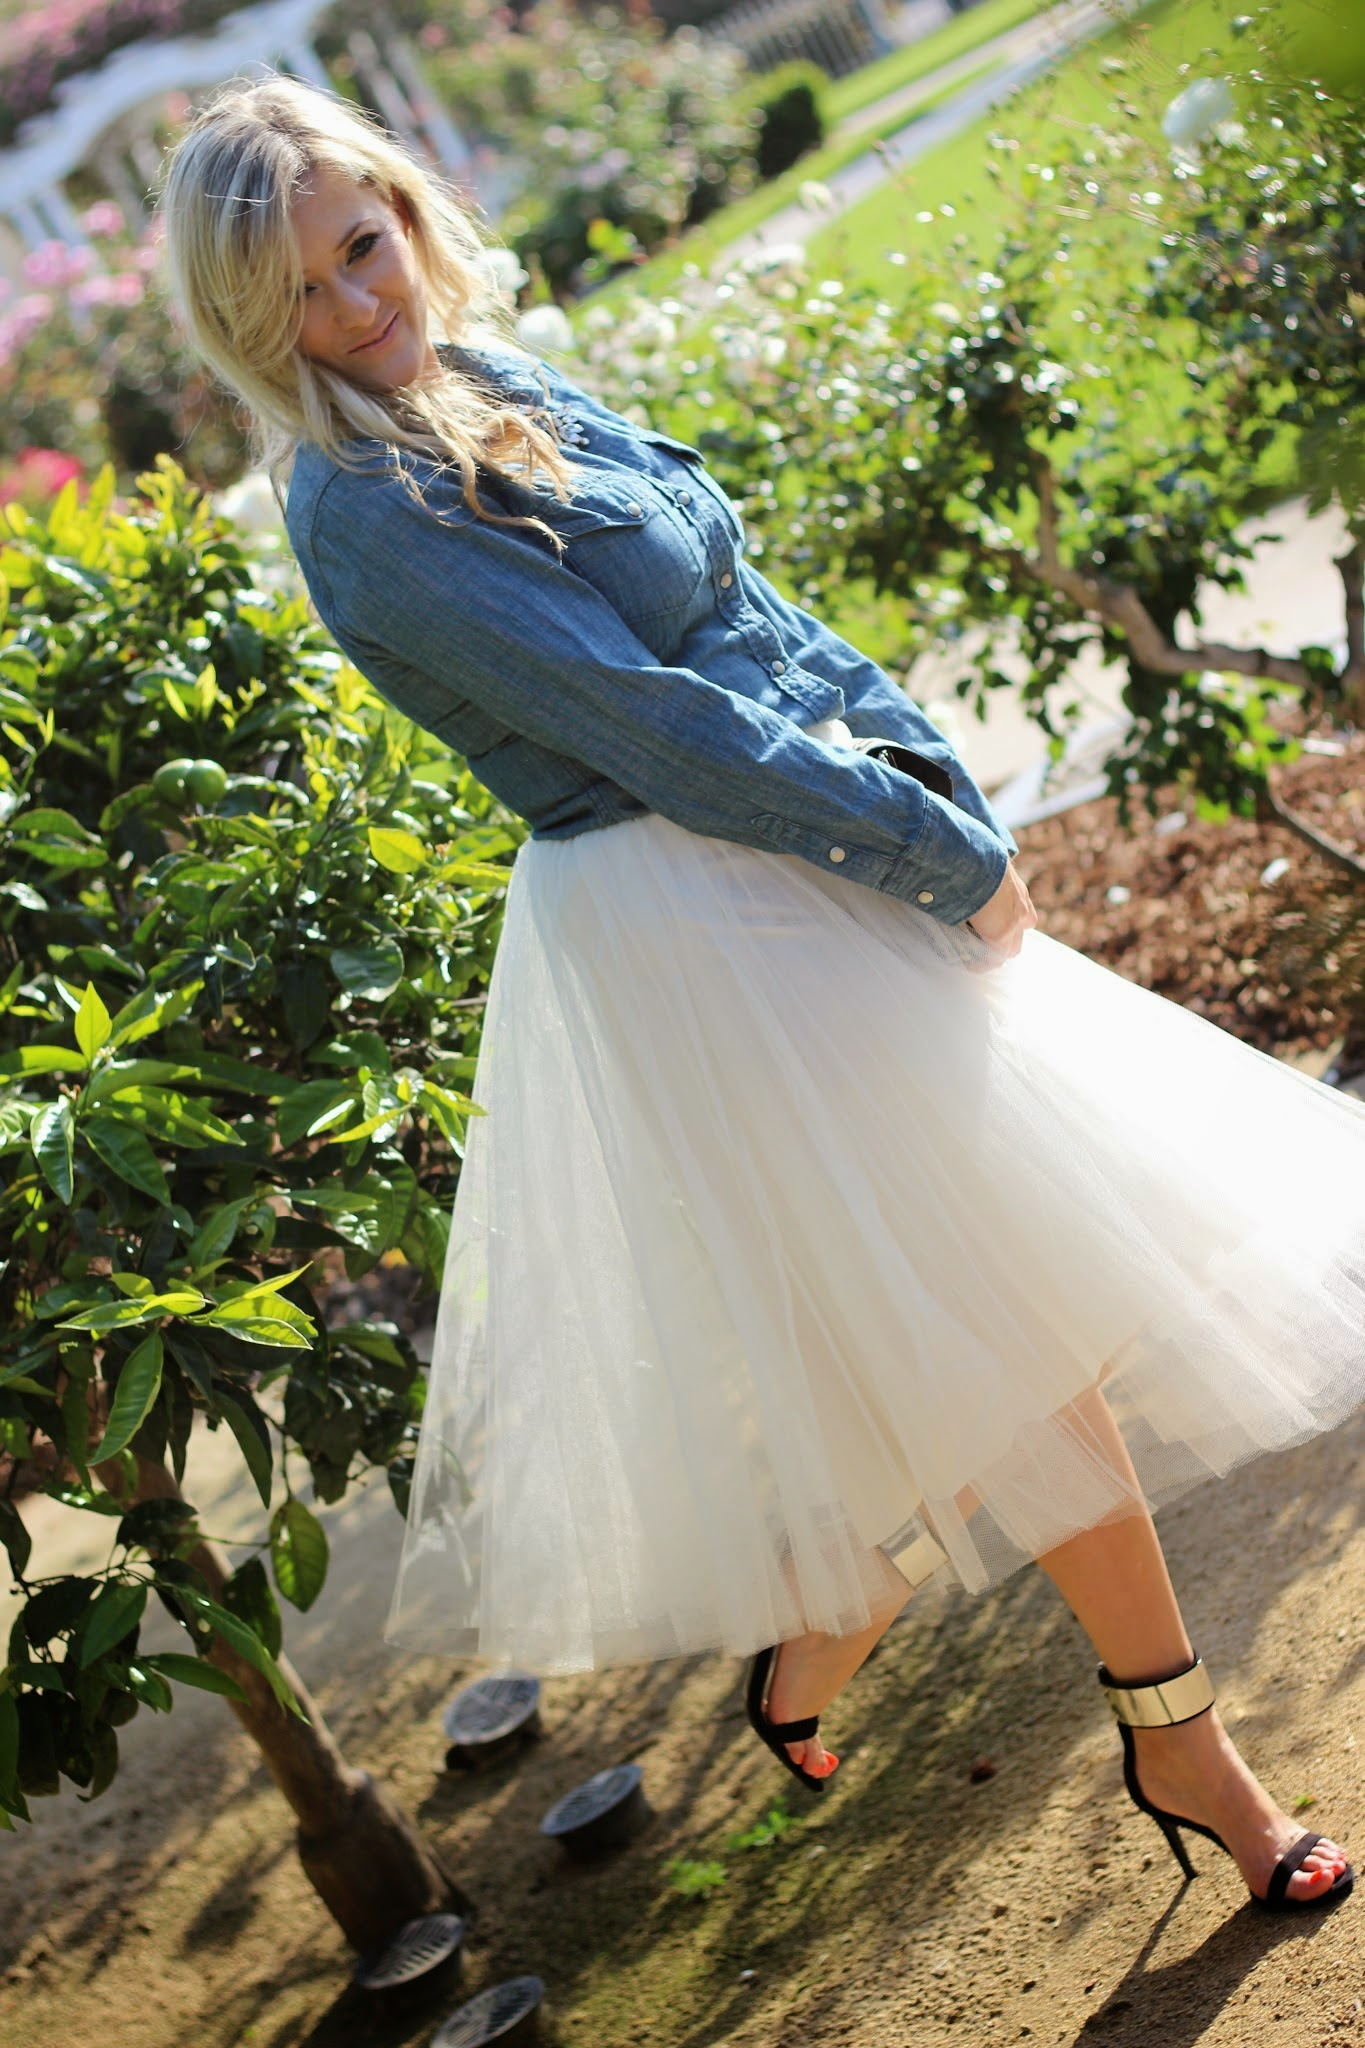 The Girl that loves, Tulle skirt, chambray, shinymix, sole society, hot iron holster